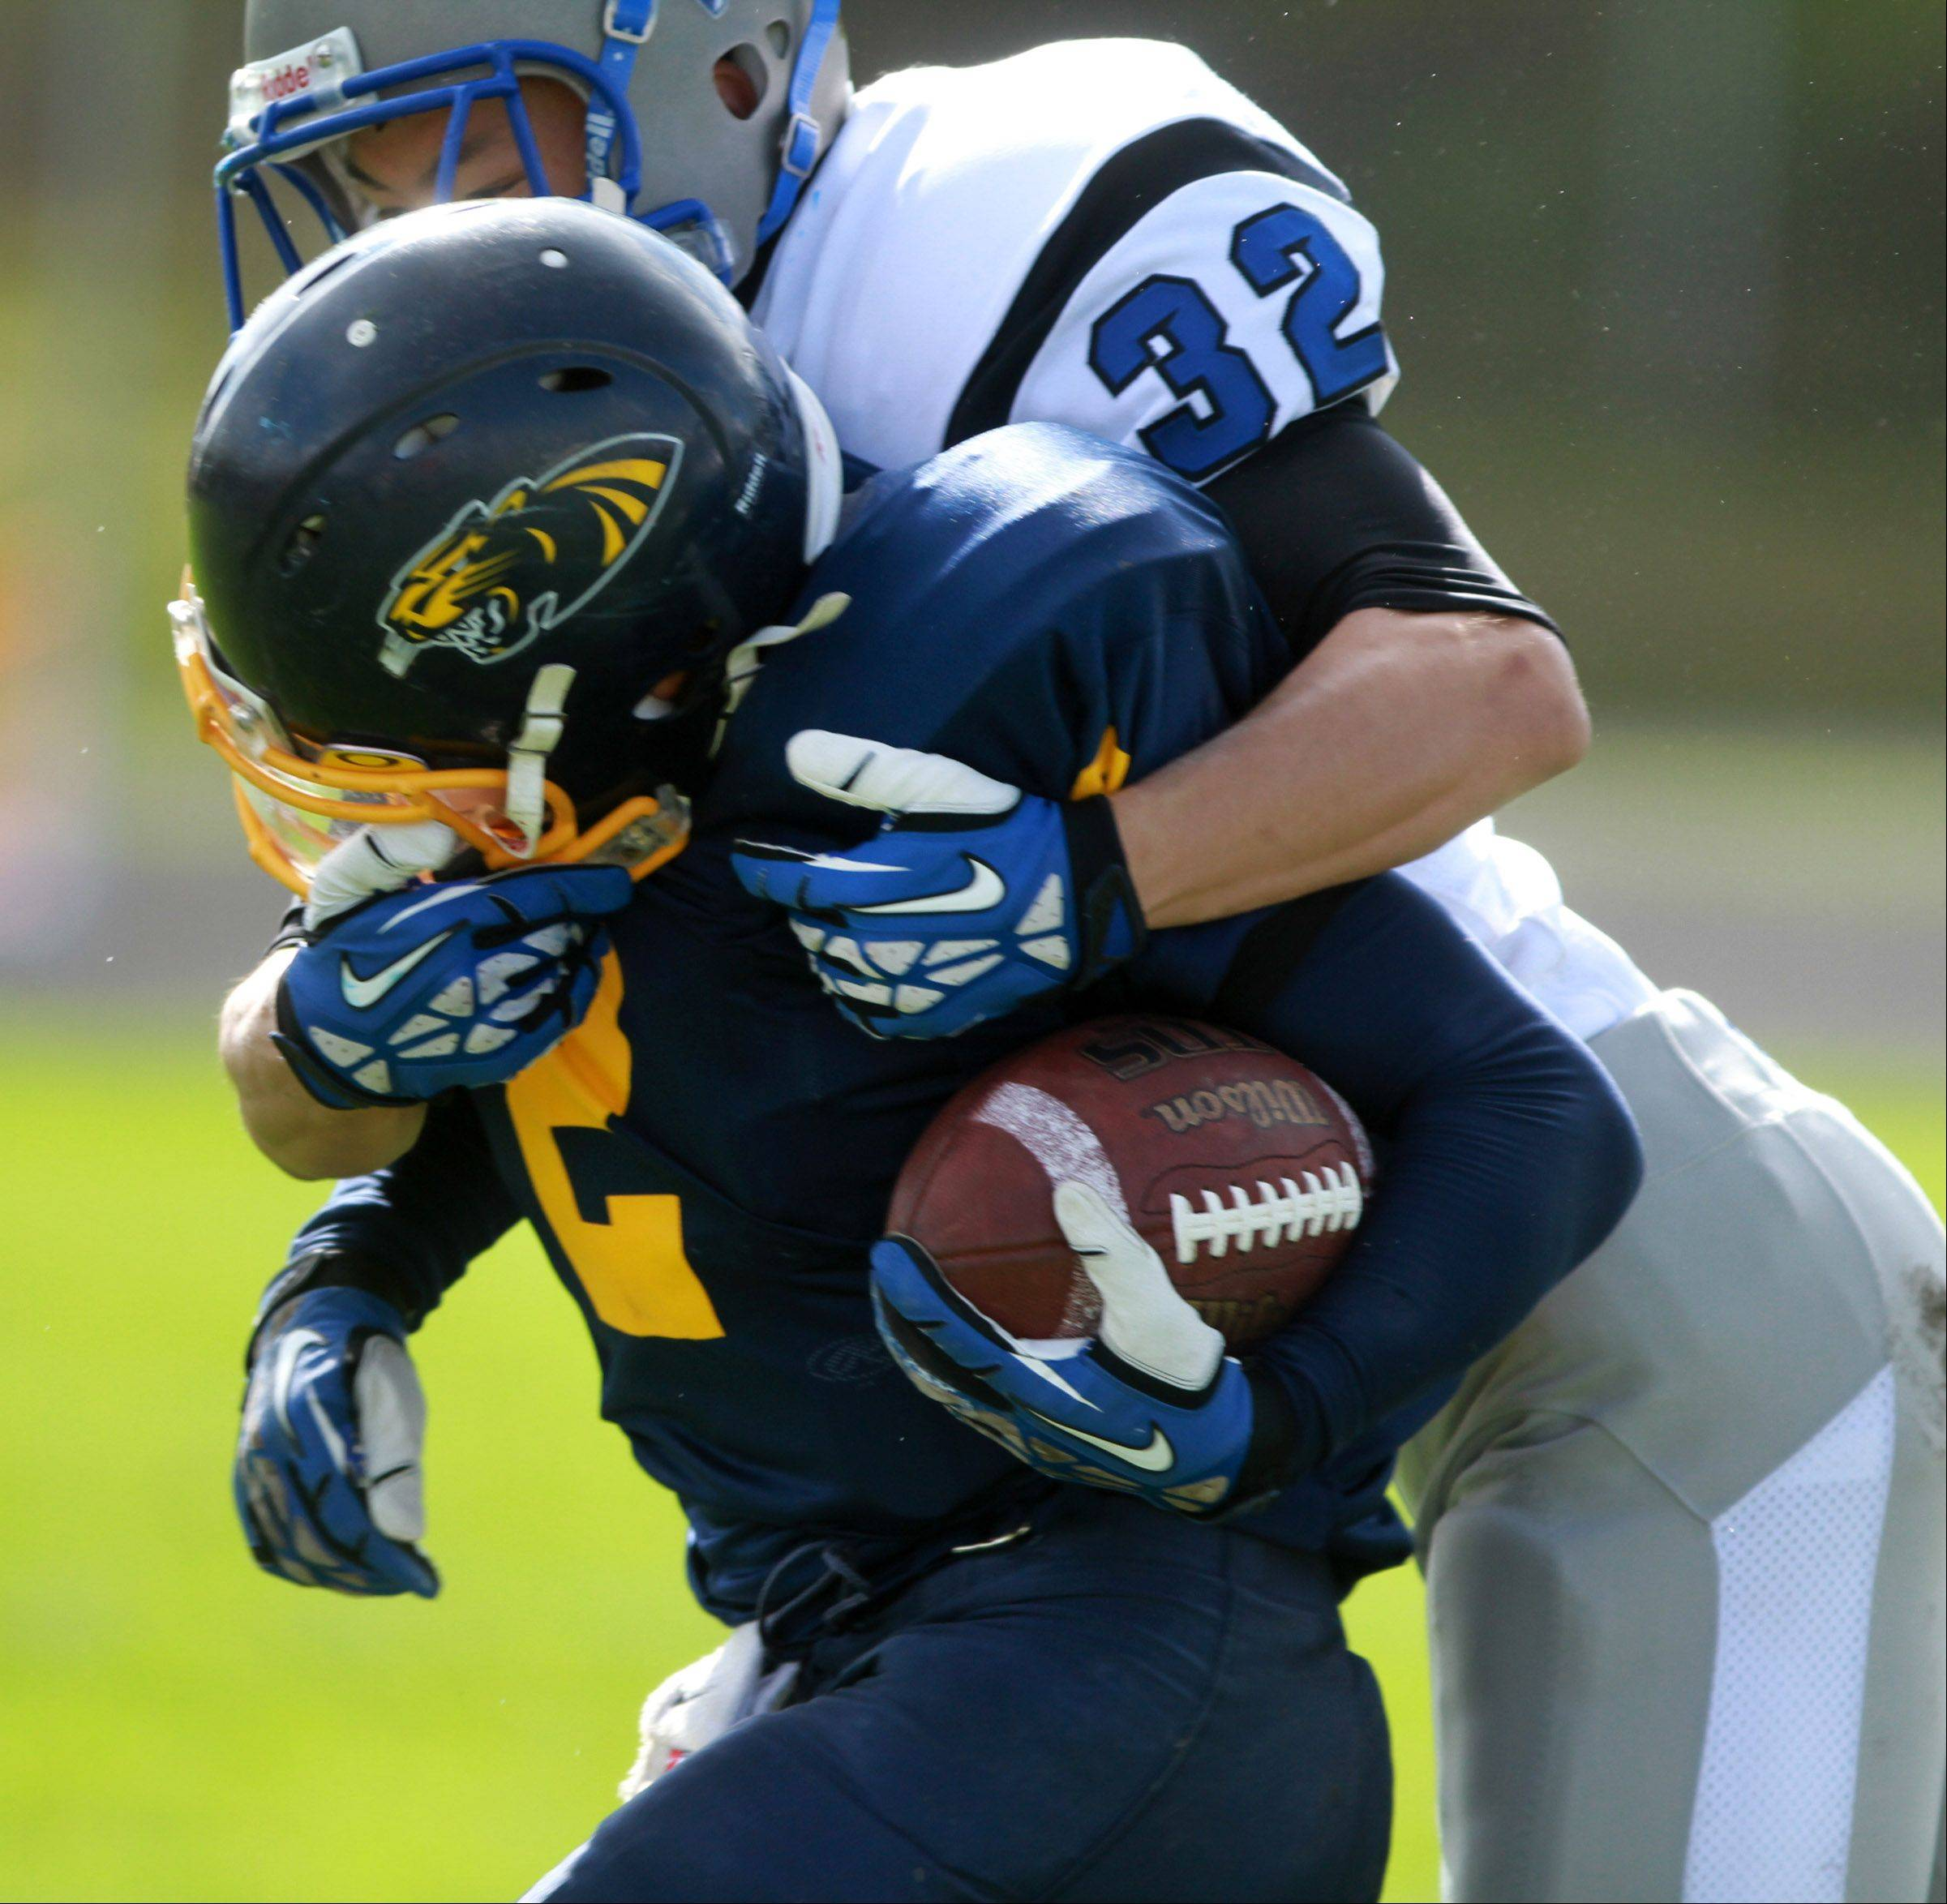 Vernon Hills defender Ben Campbell wraps up Round Lake's Karnell Wright at Round Lake on Saturday.